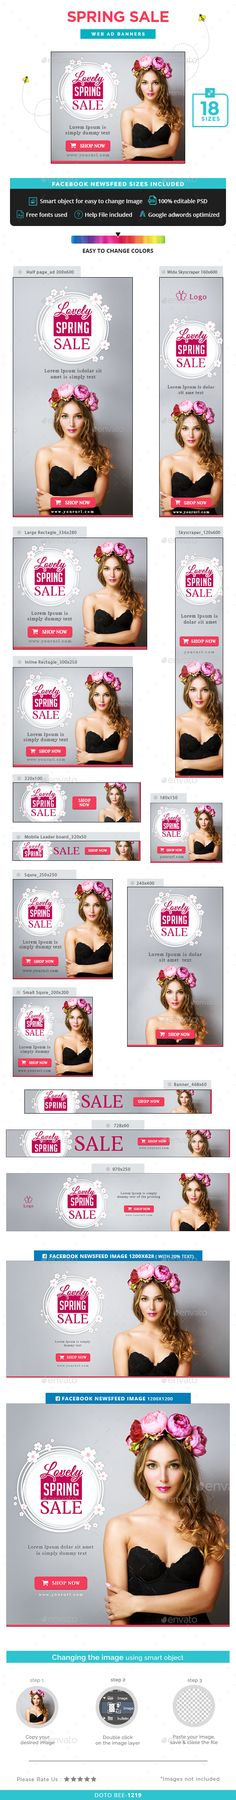 Spring Sale Banners — Photoshop PSD #web banner #flat design • Available here → https://graphicriver.net/item/spring-sale-banners/15336099?ref=pxcr